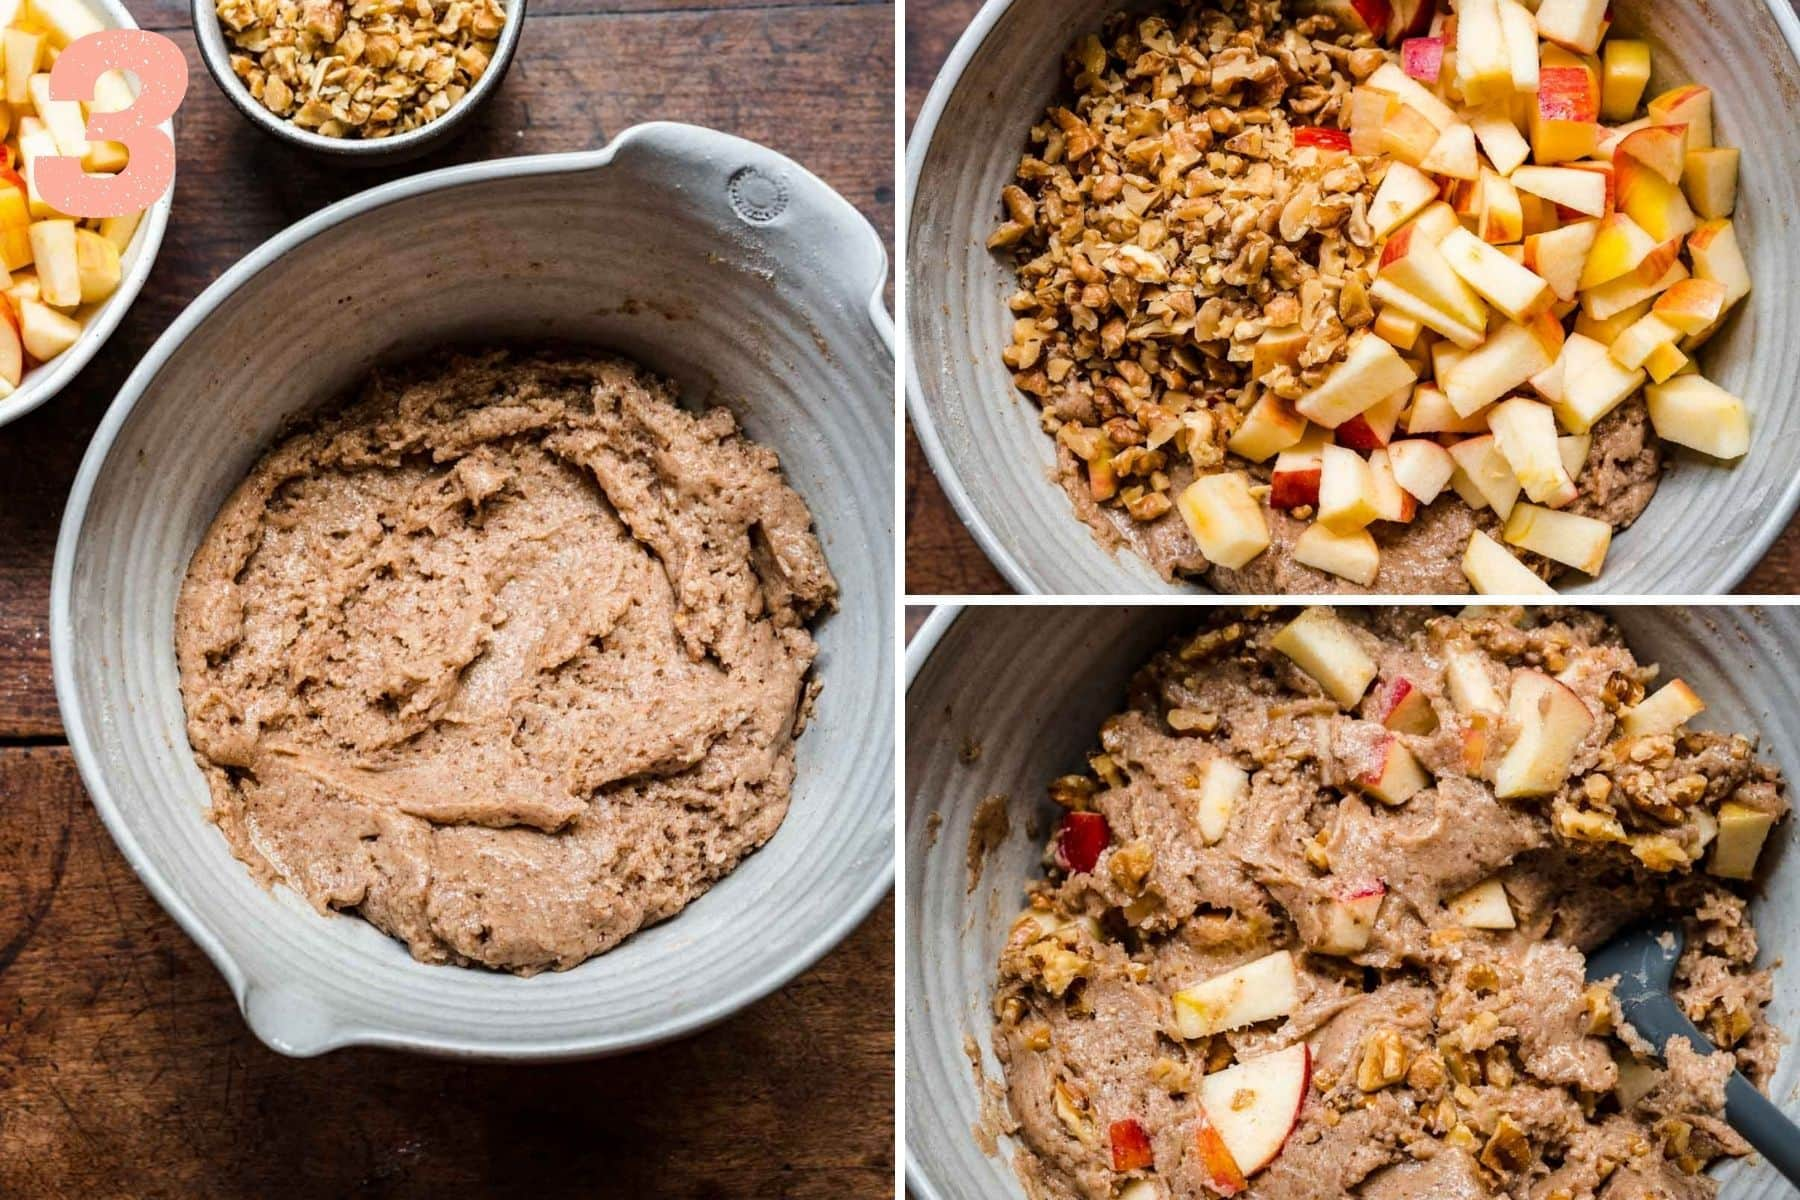 On the left: dry and wet ingredients mixed together. On the right: walnuts and apples being incorporated into the batter.